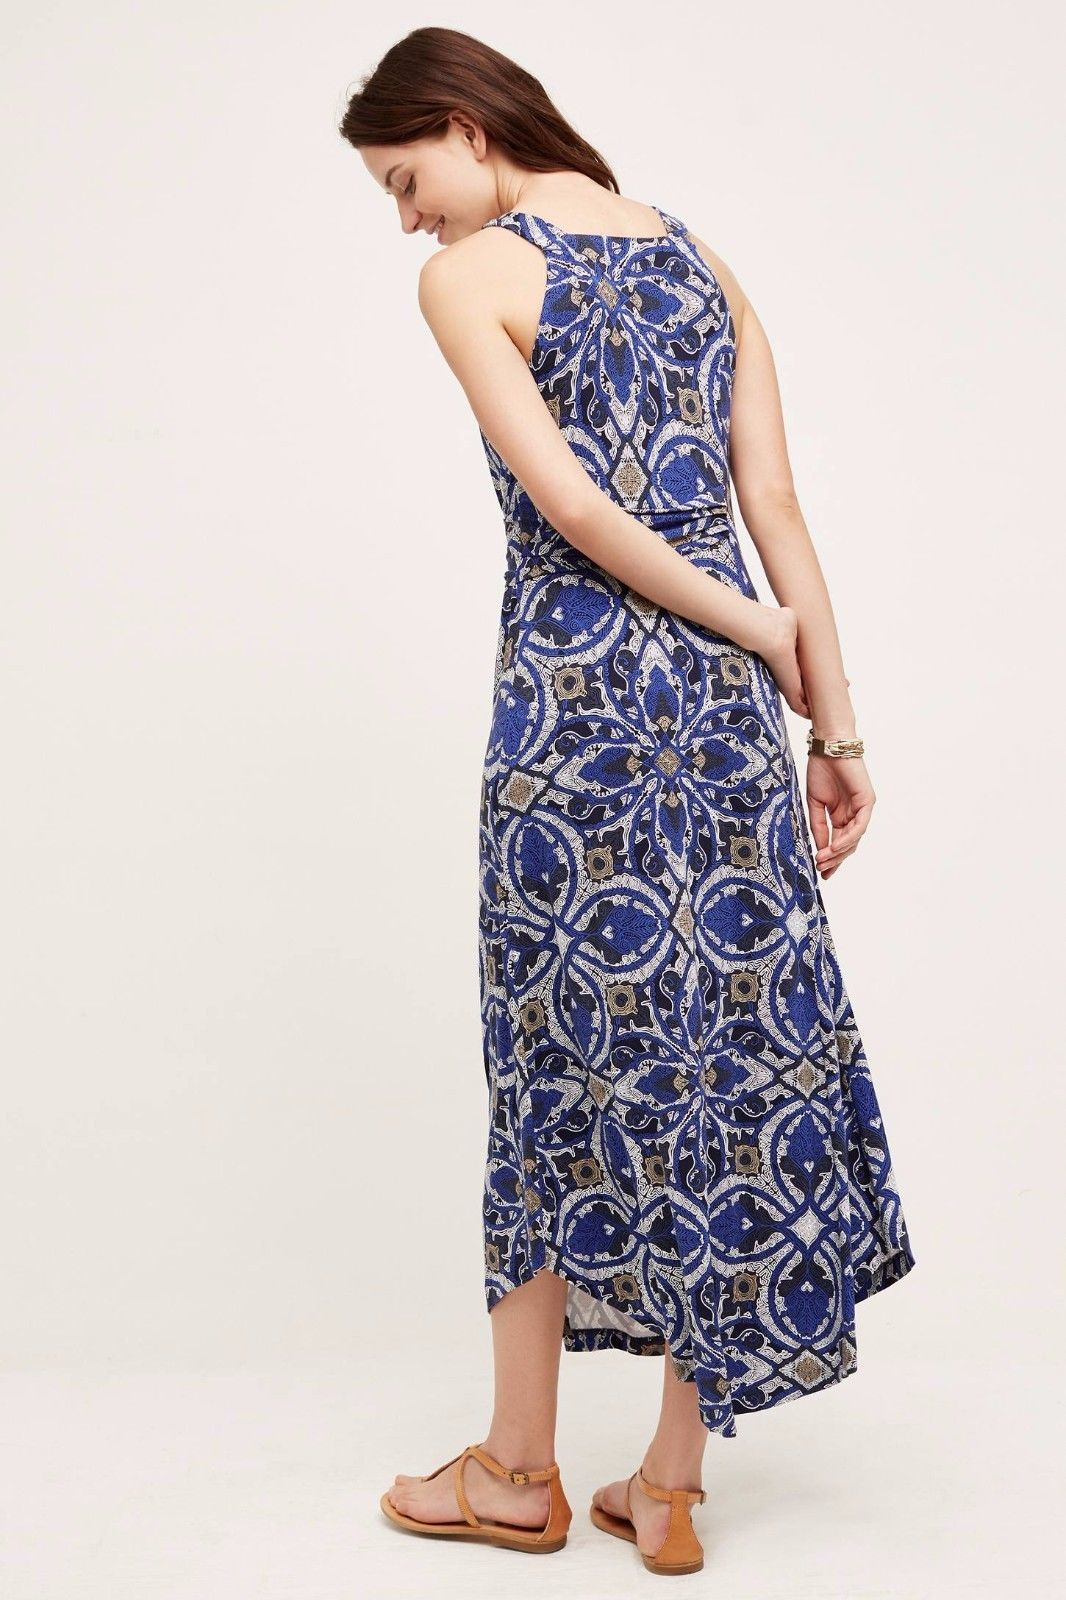 NWT ANTHROPOLOGIE AURETTA PRINTED SLIM MAXI DRESS by MAEVE M